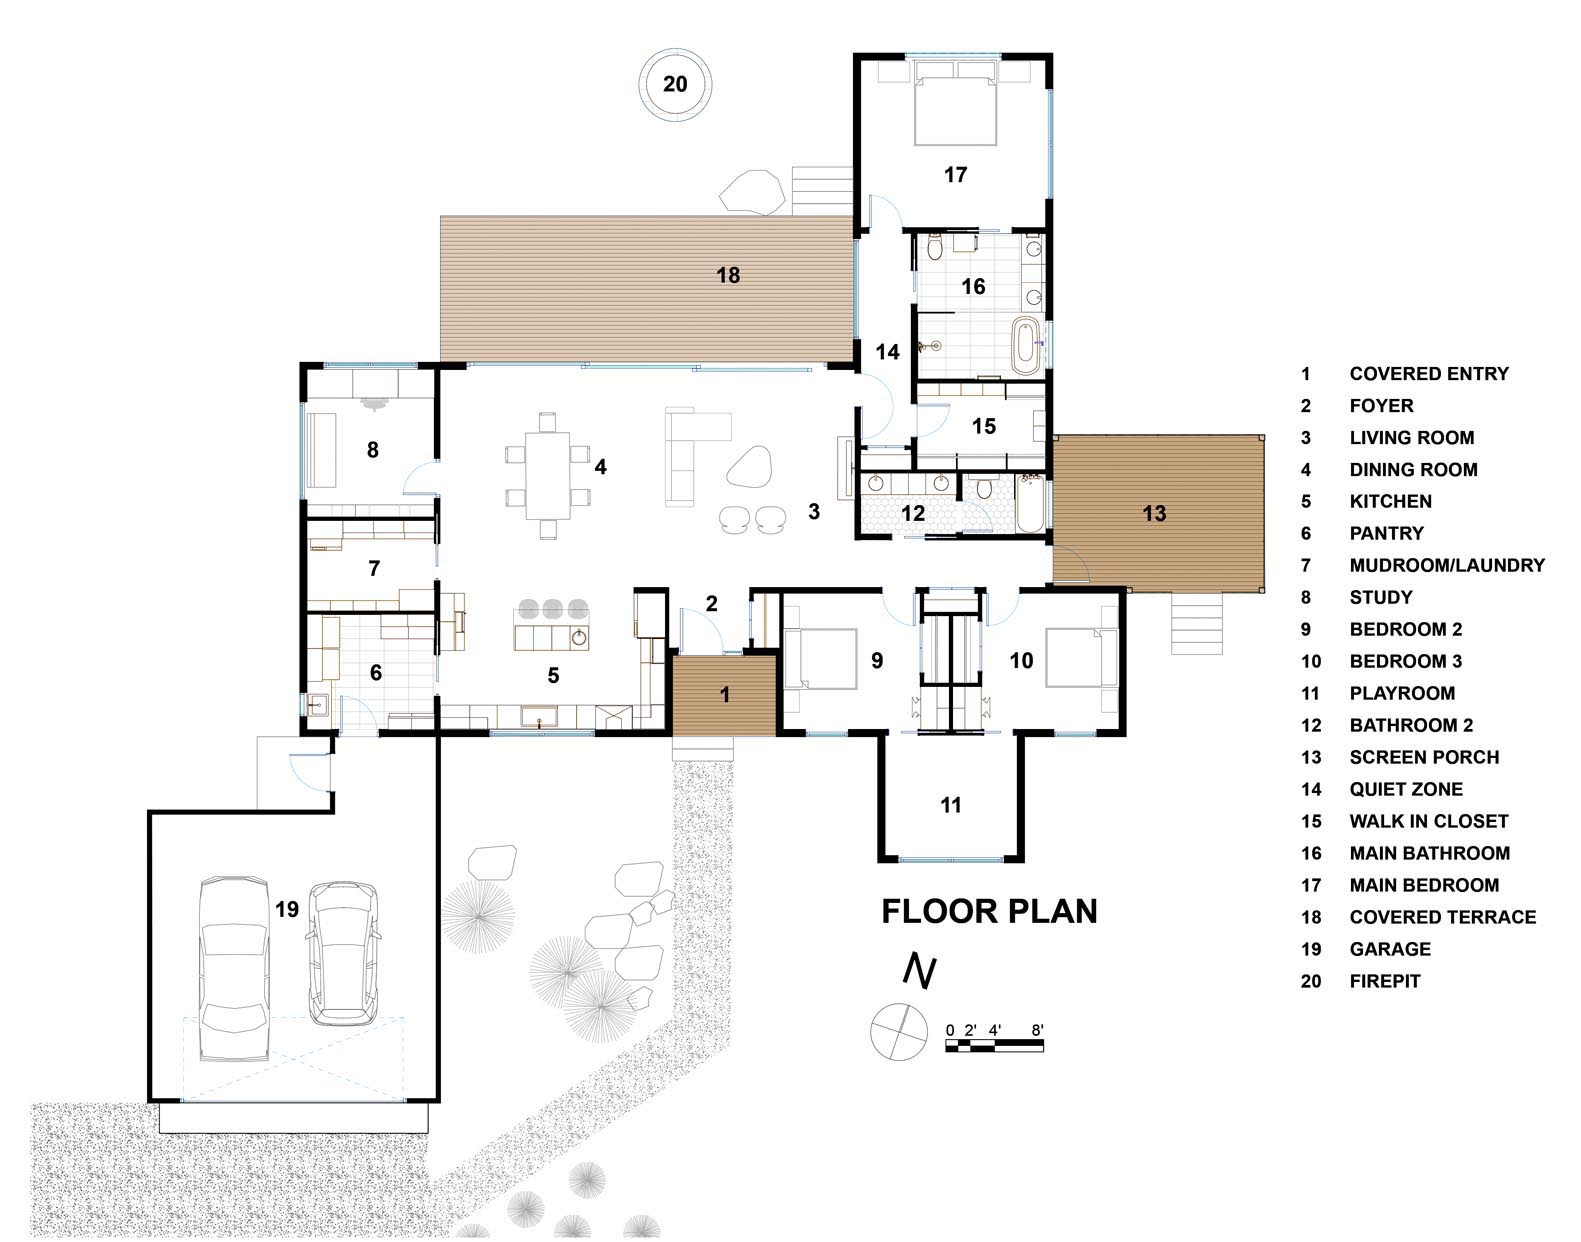 The floor plan of a modern home with a covered deck, and an open plan interior.